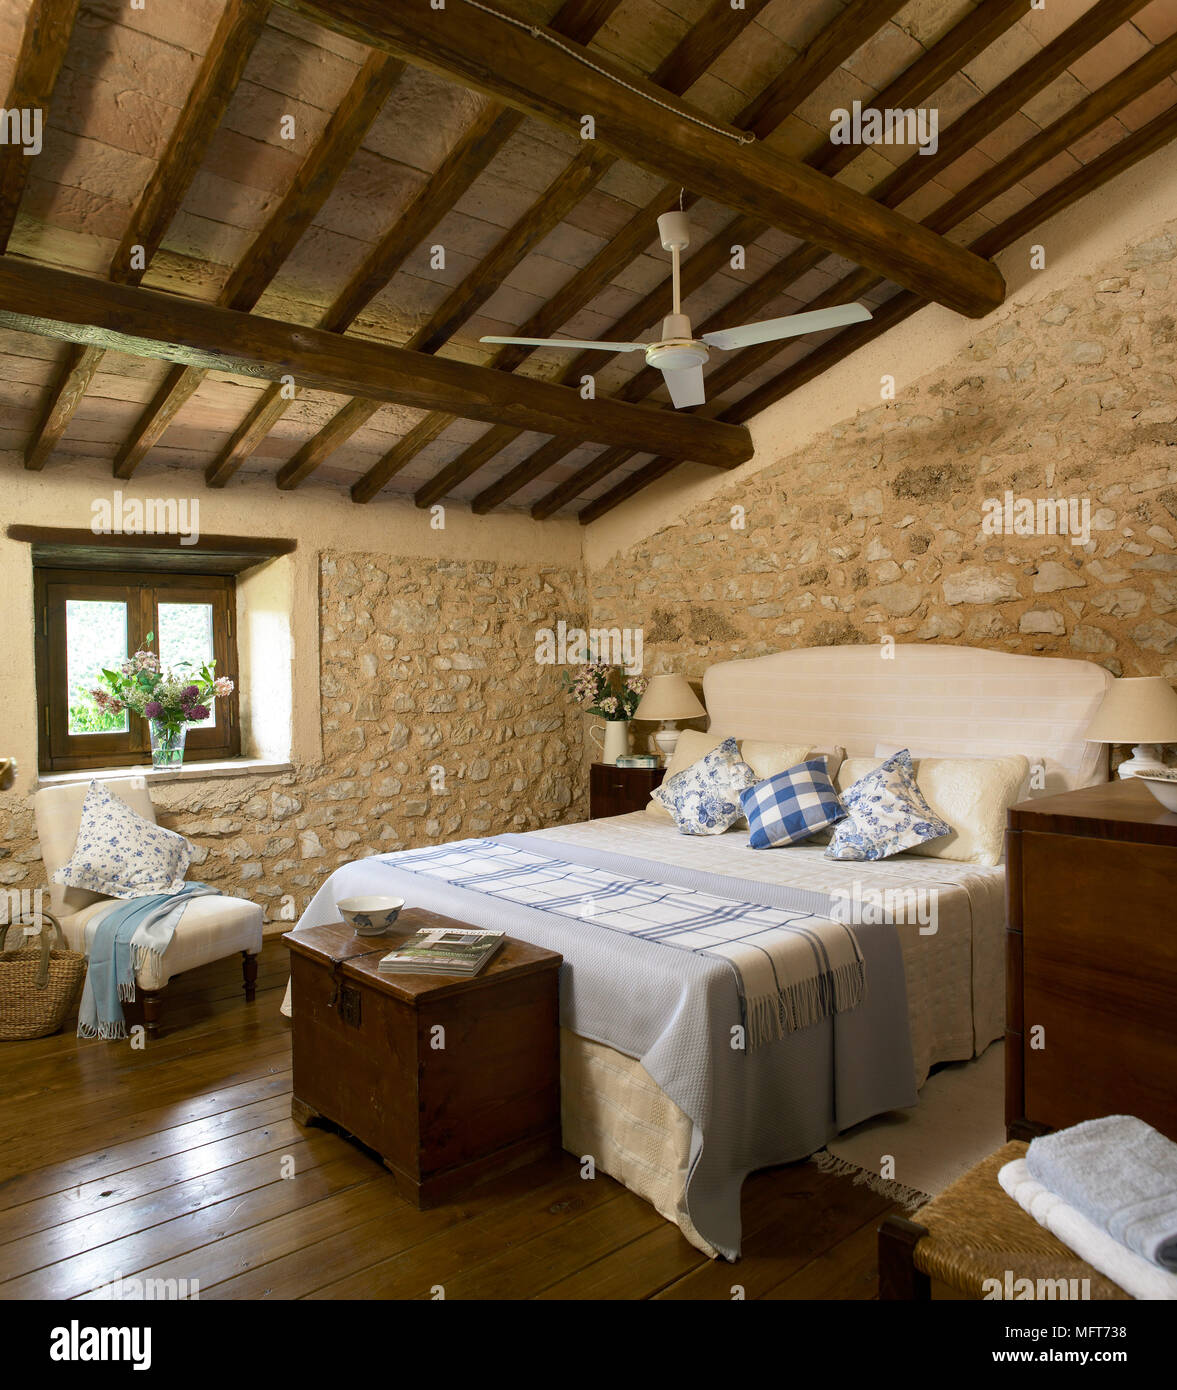 A country bedroom with exposed rustic stone walls and beamed ceiling double bed with - Camera stile country ...